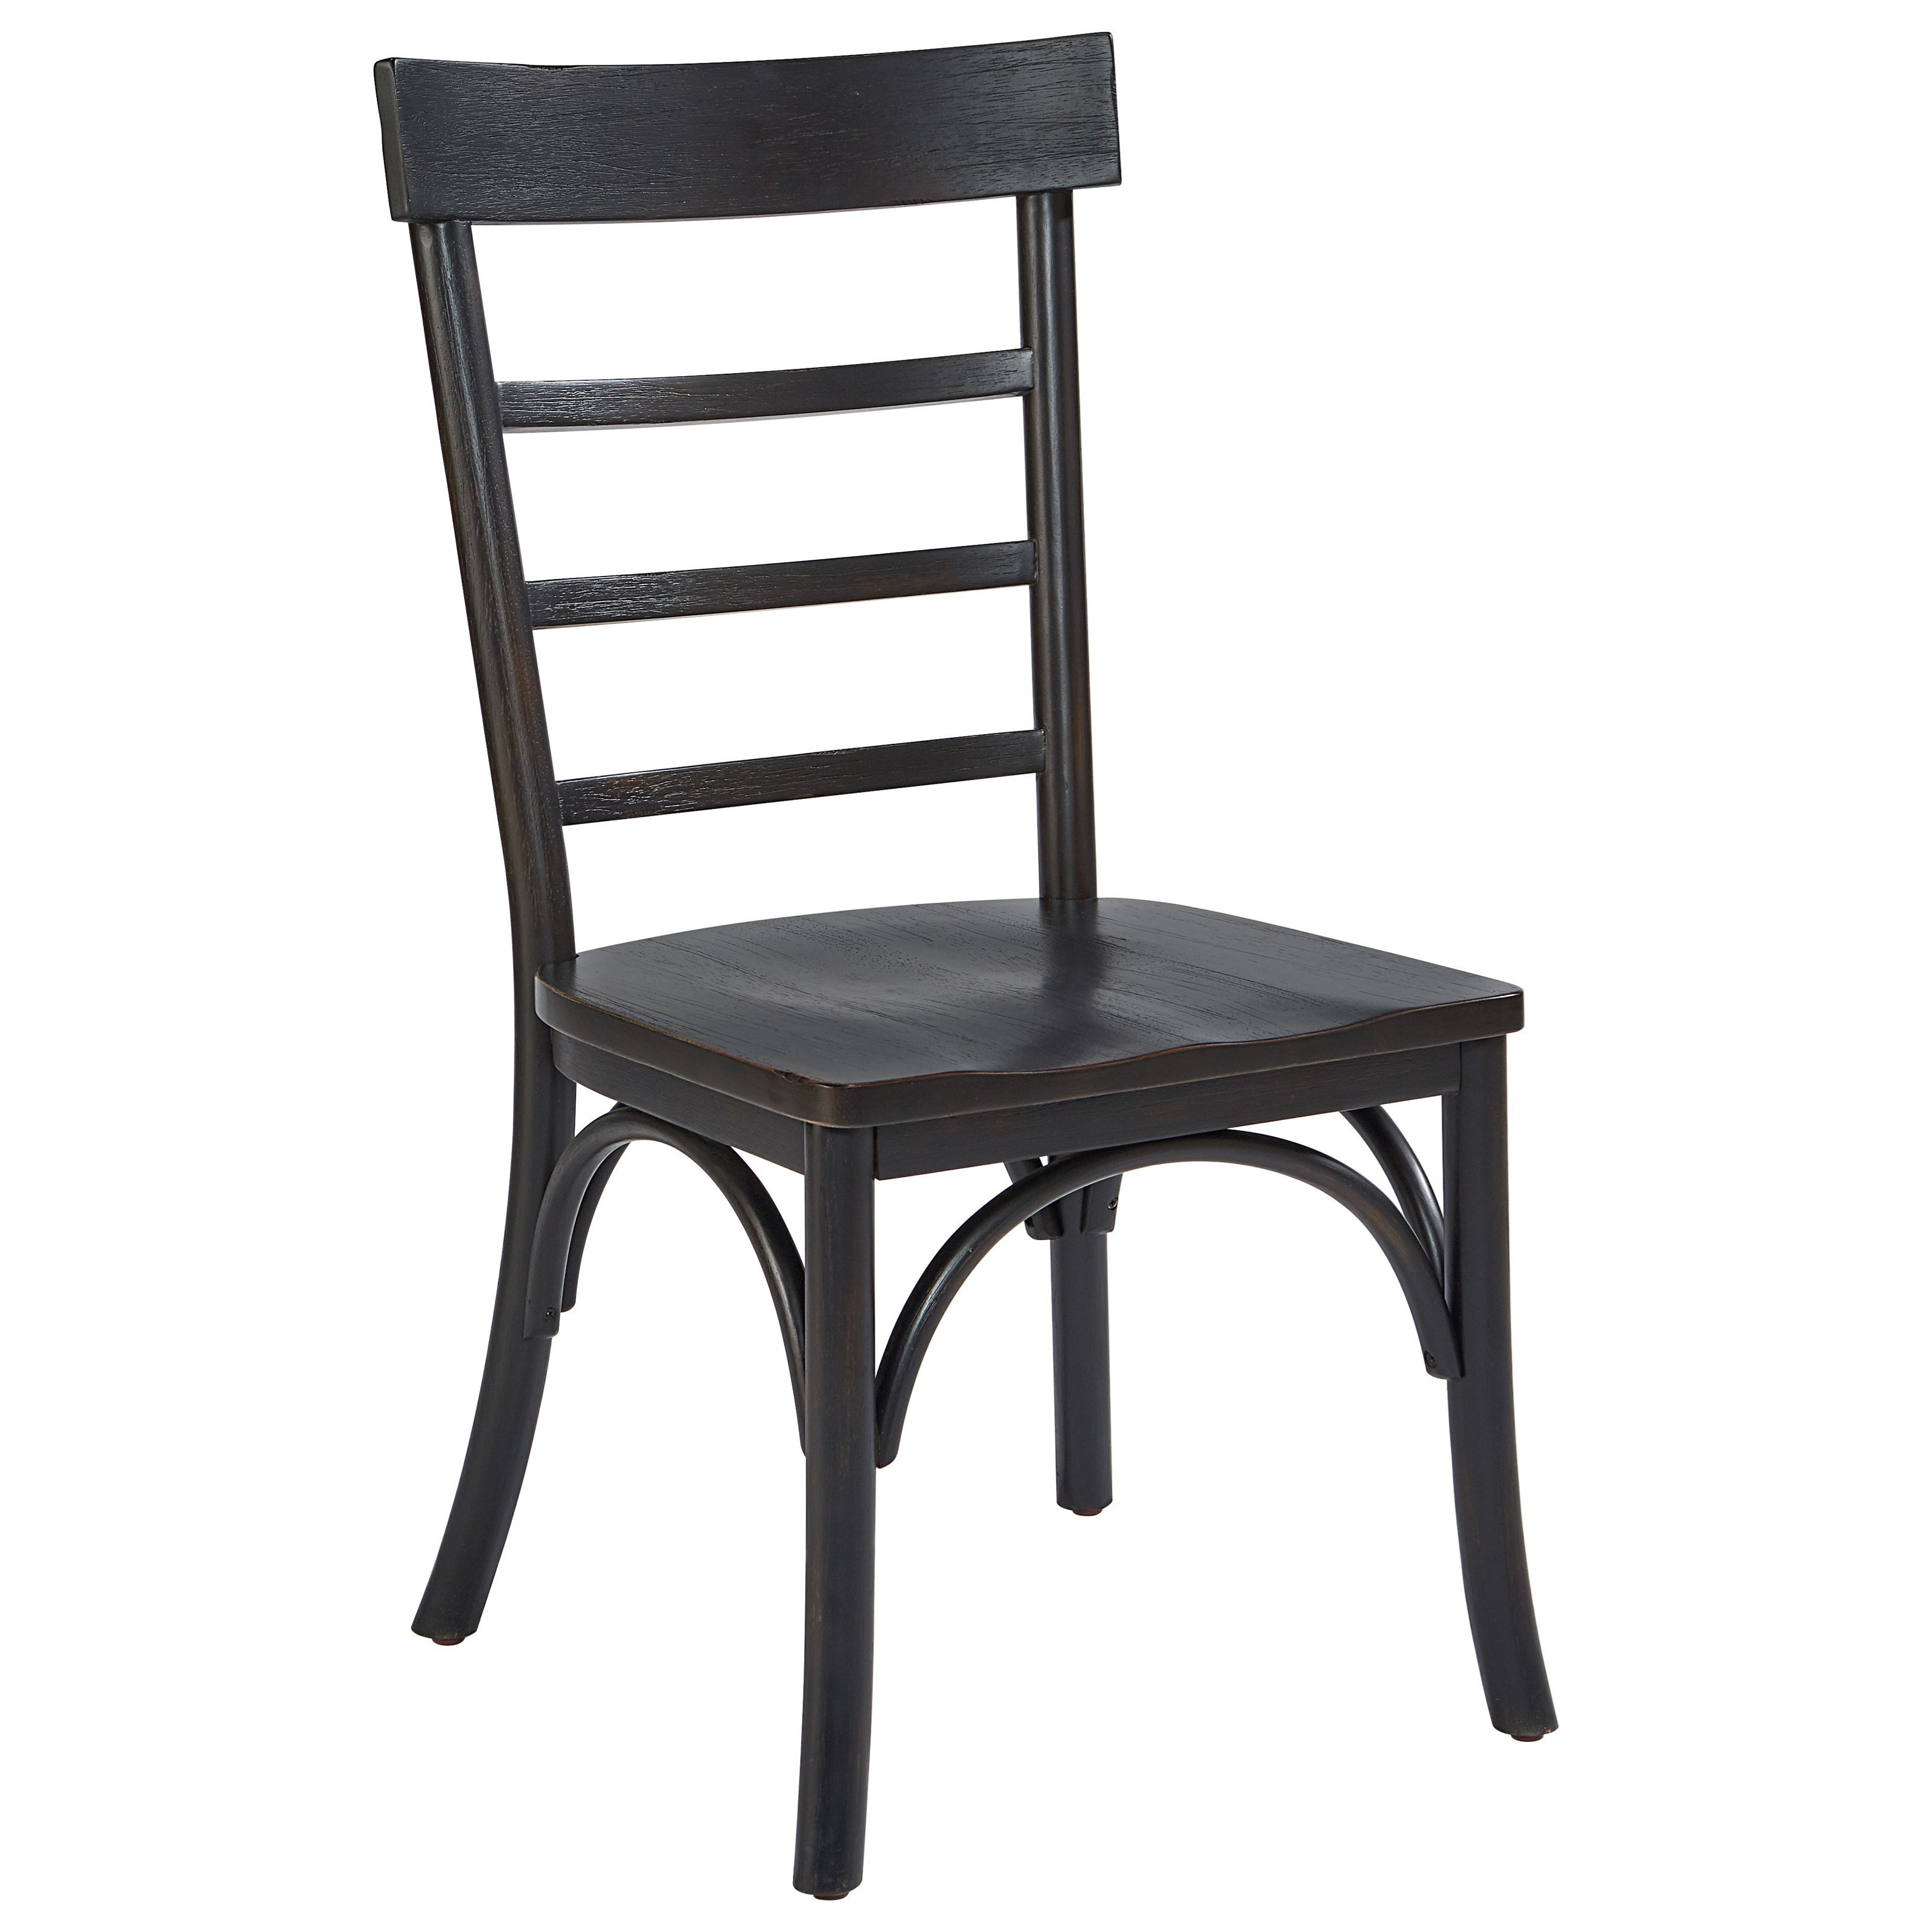 Magnolia Home By Joanna Gaines PrimitiveDining Side Chair ...